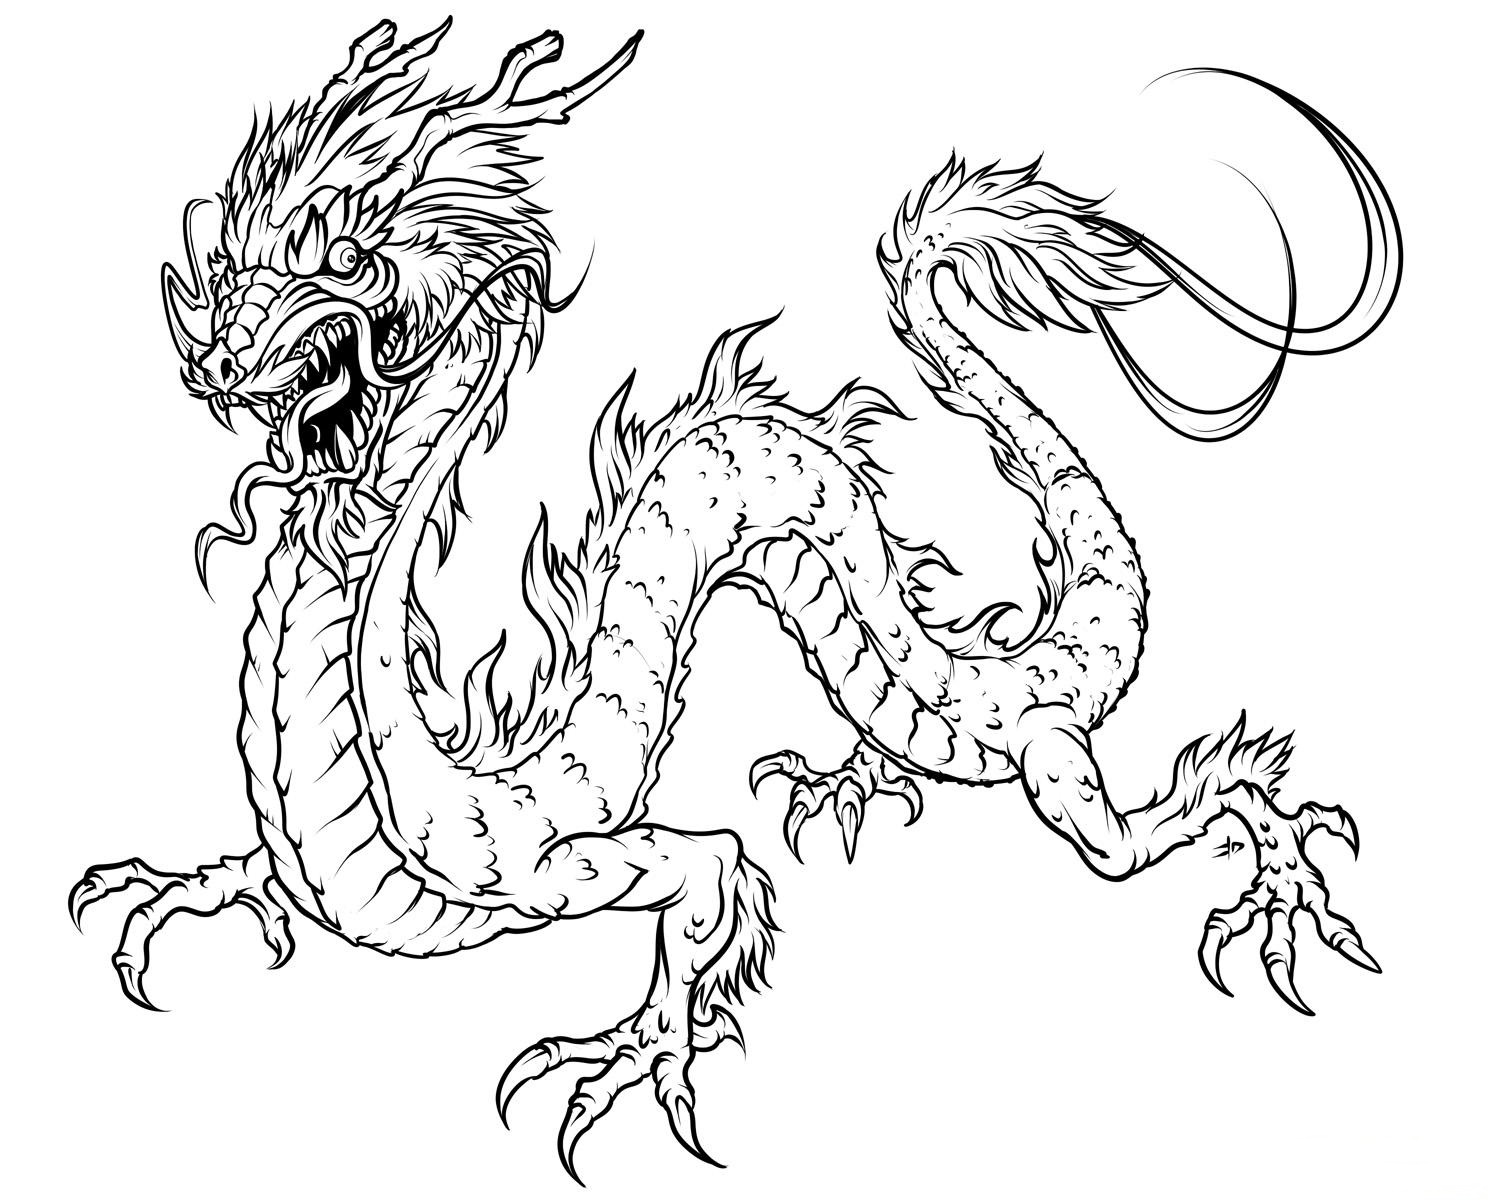 chinese dragon colouring pictures top 10 free printable chinese dragon coloring pages online dragon colouring chinese pictures